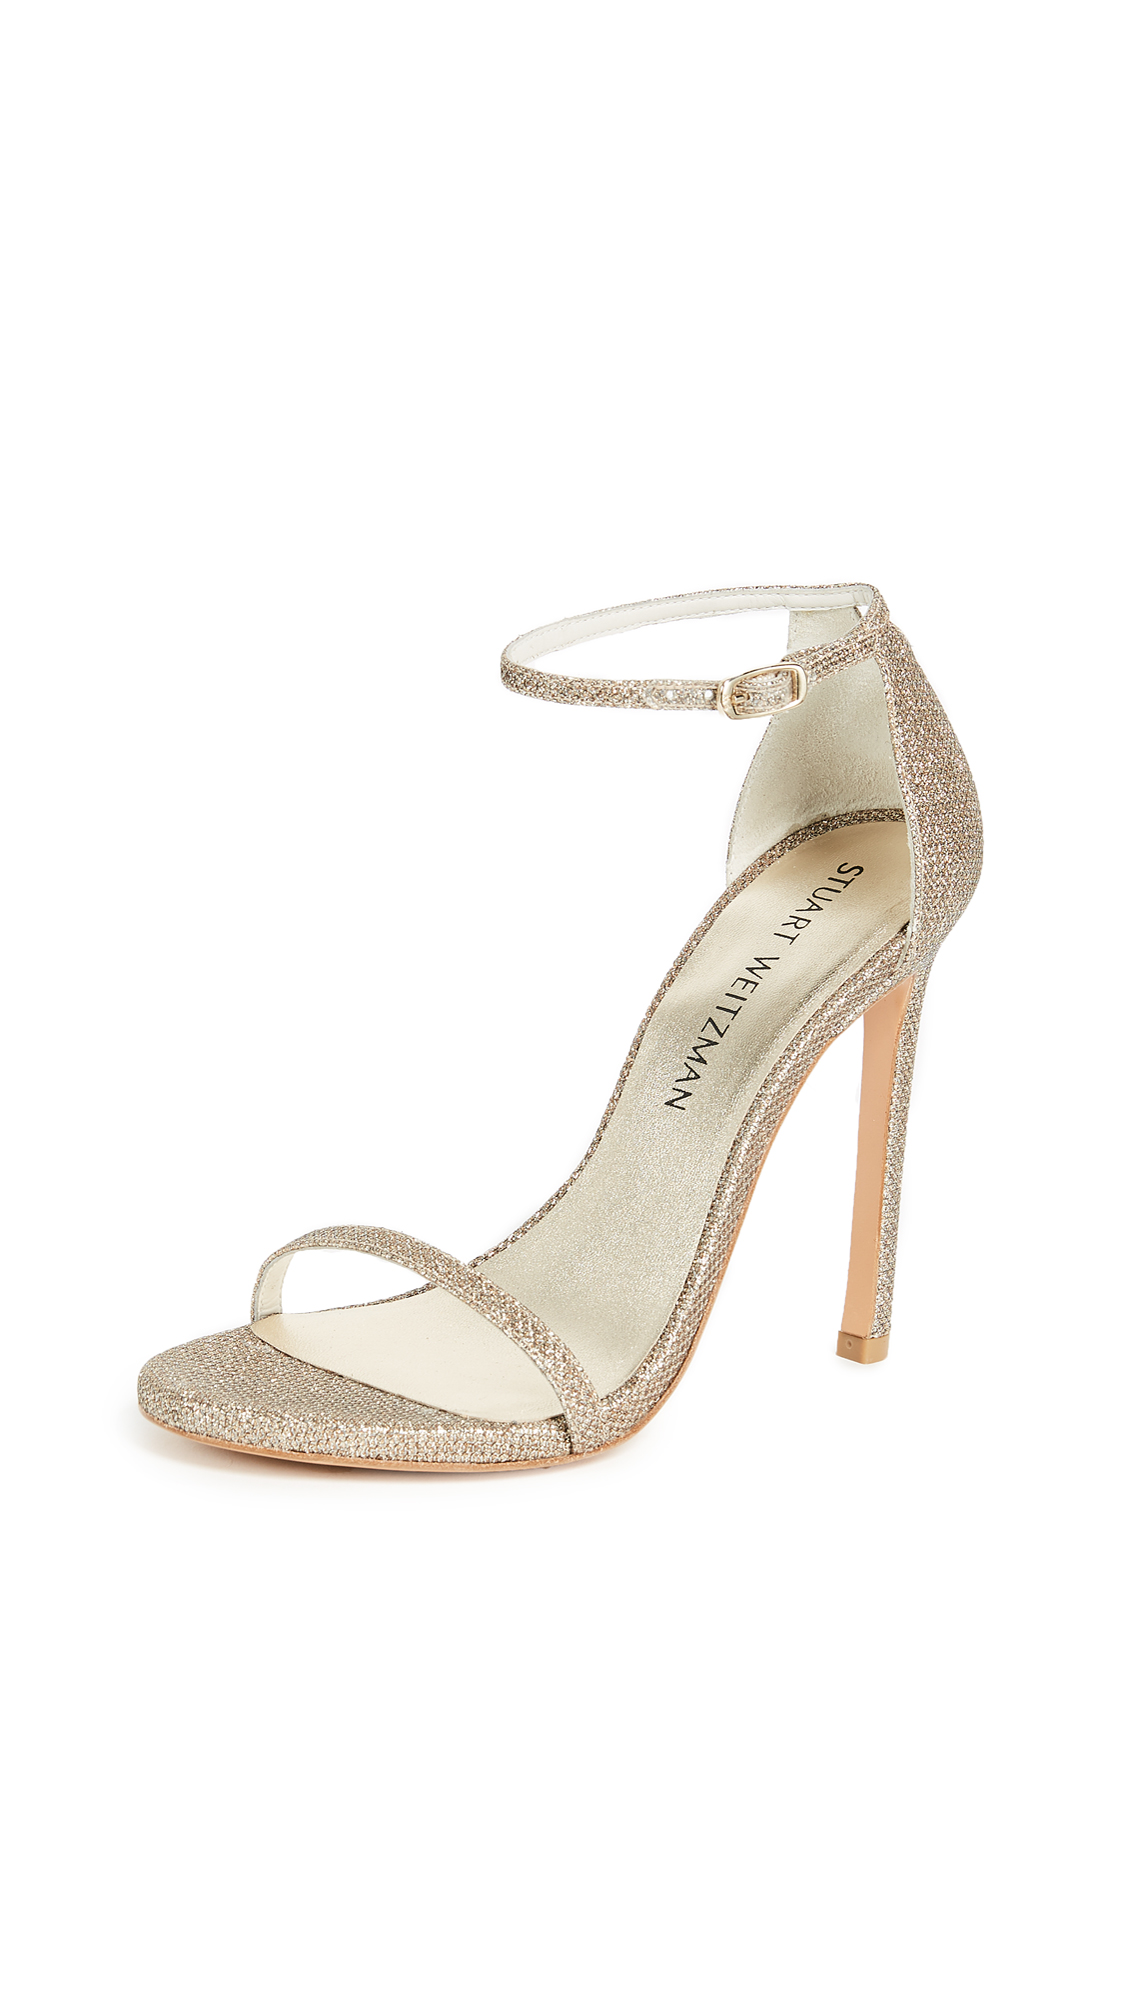 Stuart Weitzman Nudist 110mm Sandals - Platinum